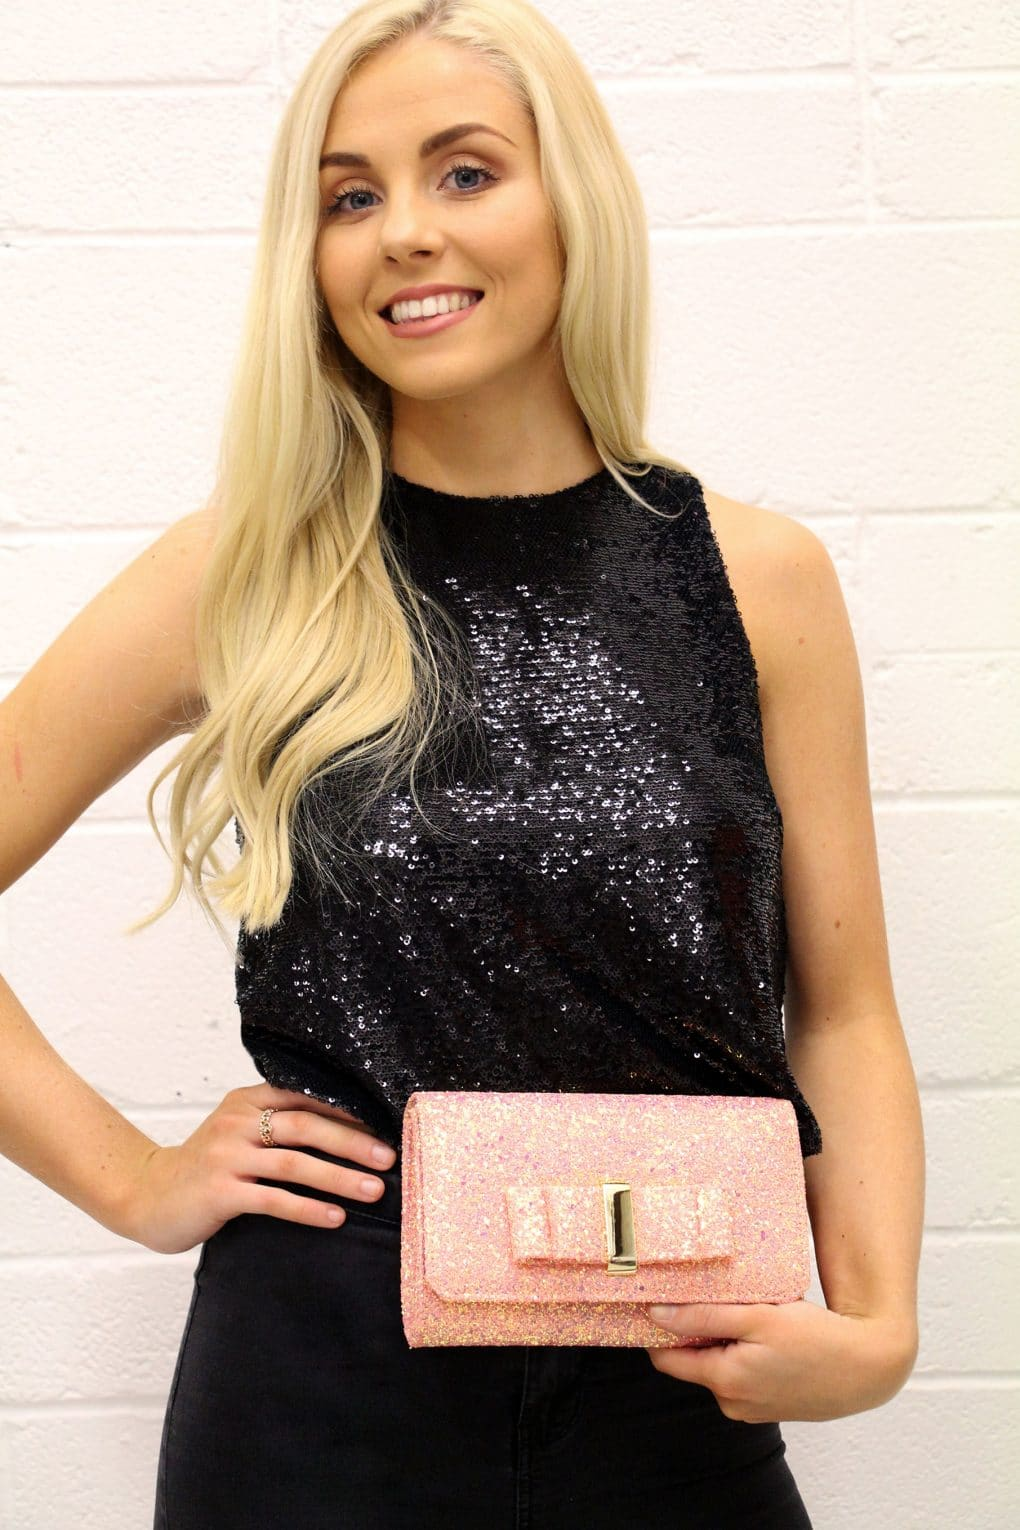 Alila-Pink-Glitter-Clutch-Bag-Mascara